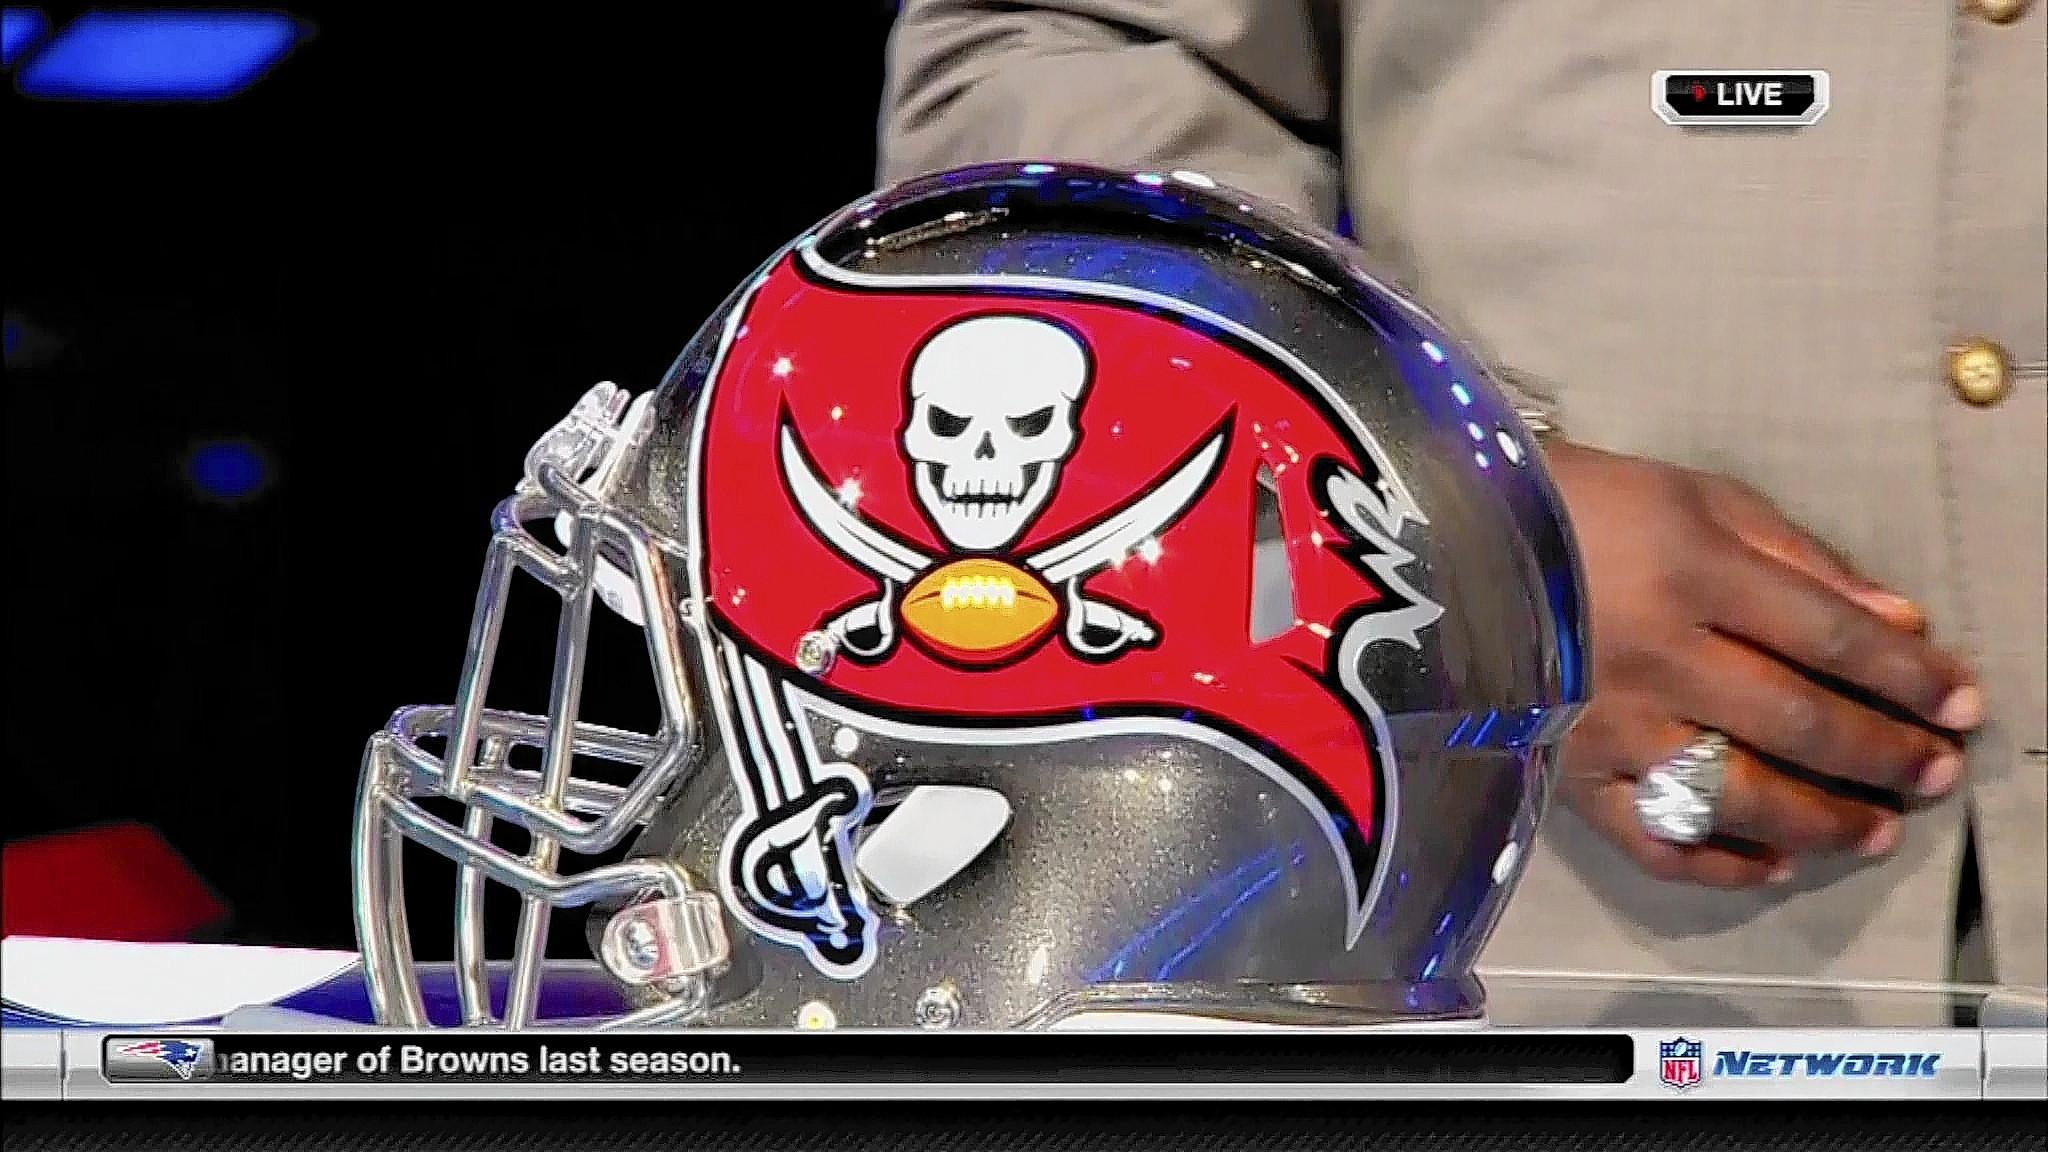 The new Bucs helmet is shown Thursday night on NFL Network. It features a larger, bolder pirate flag logo and a chrome facemask.